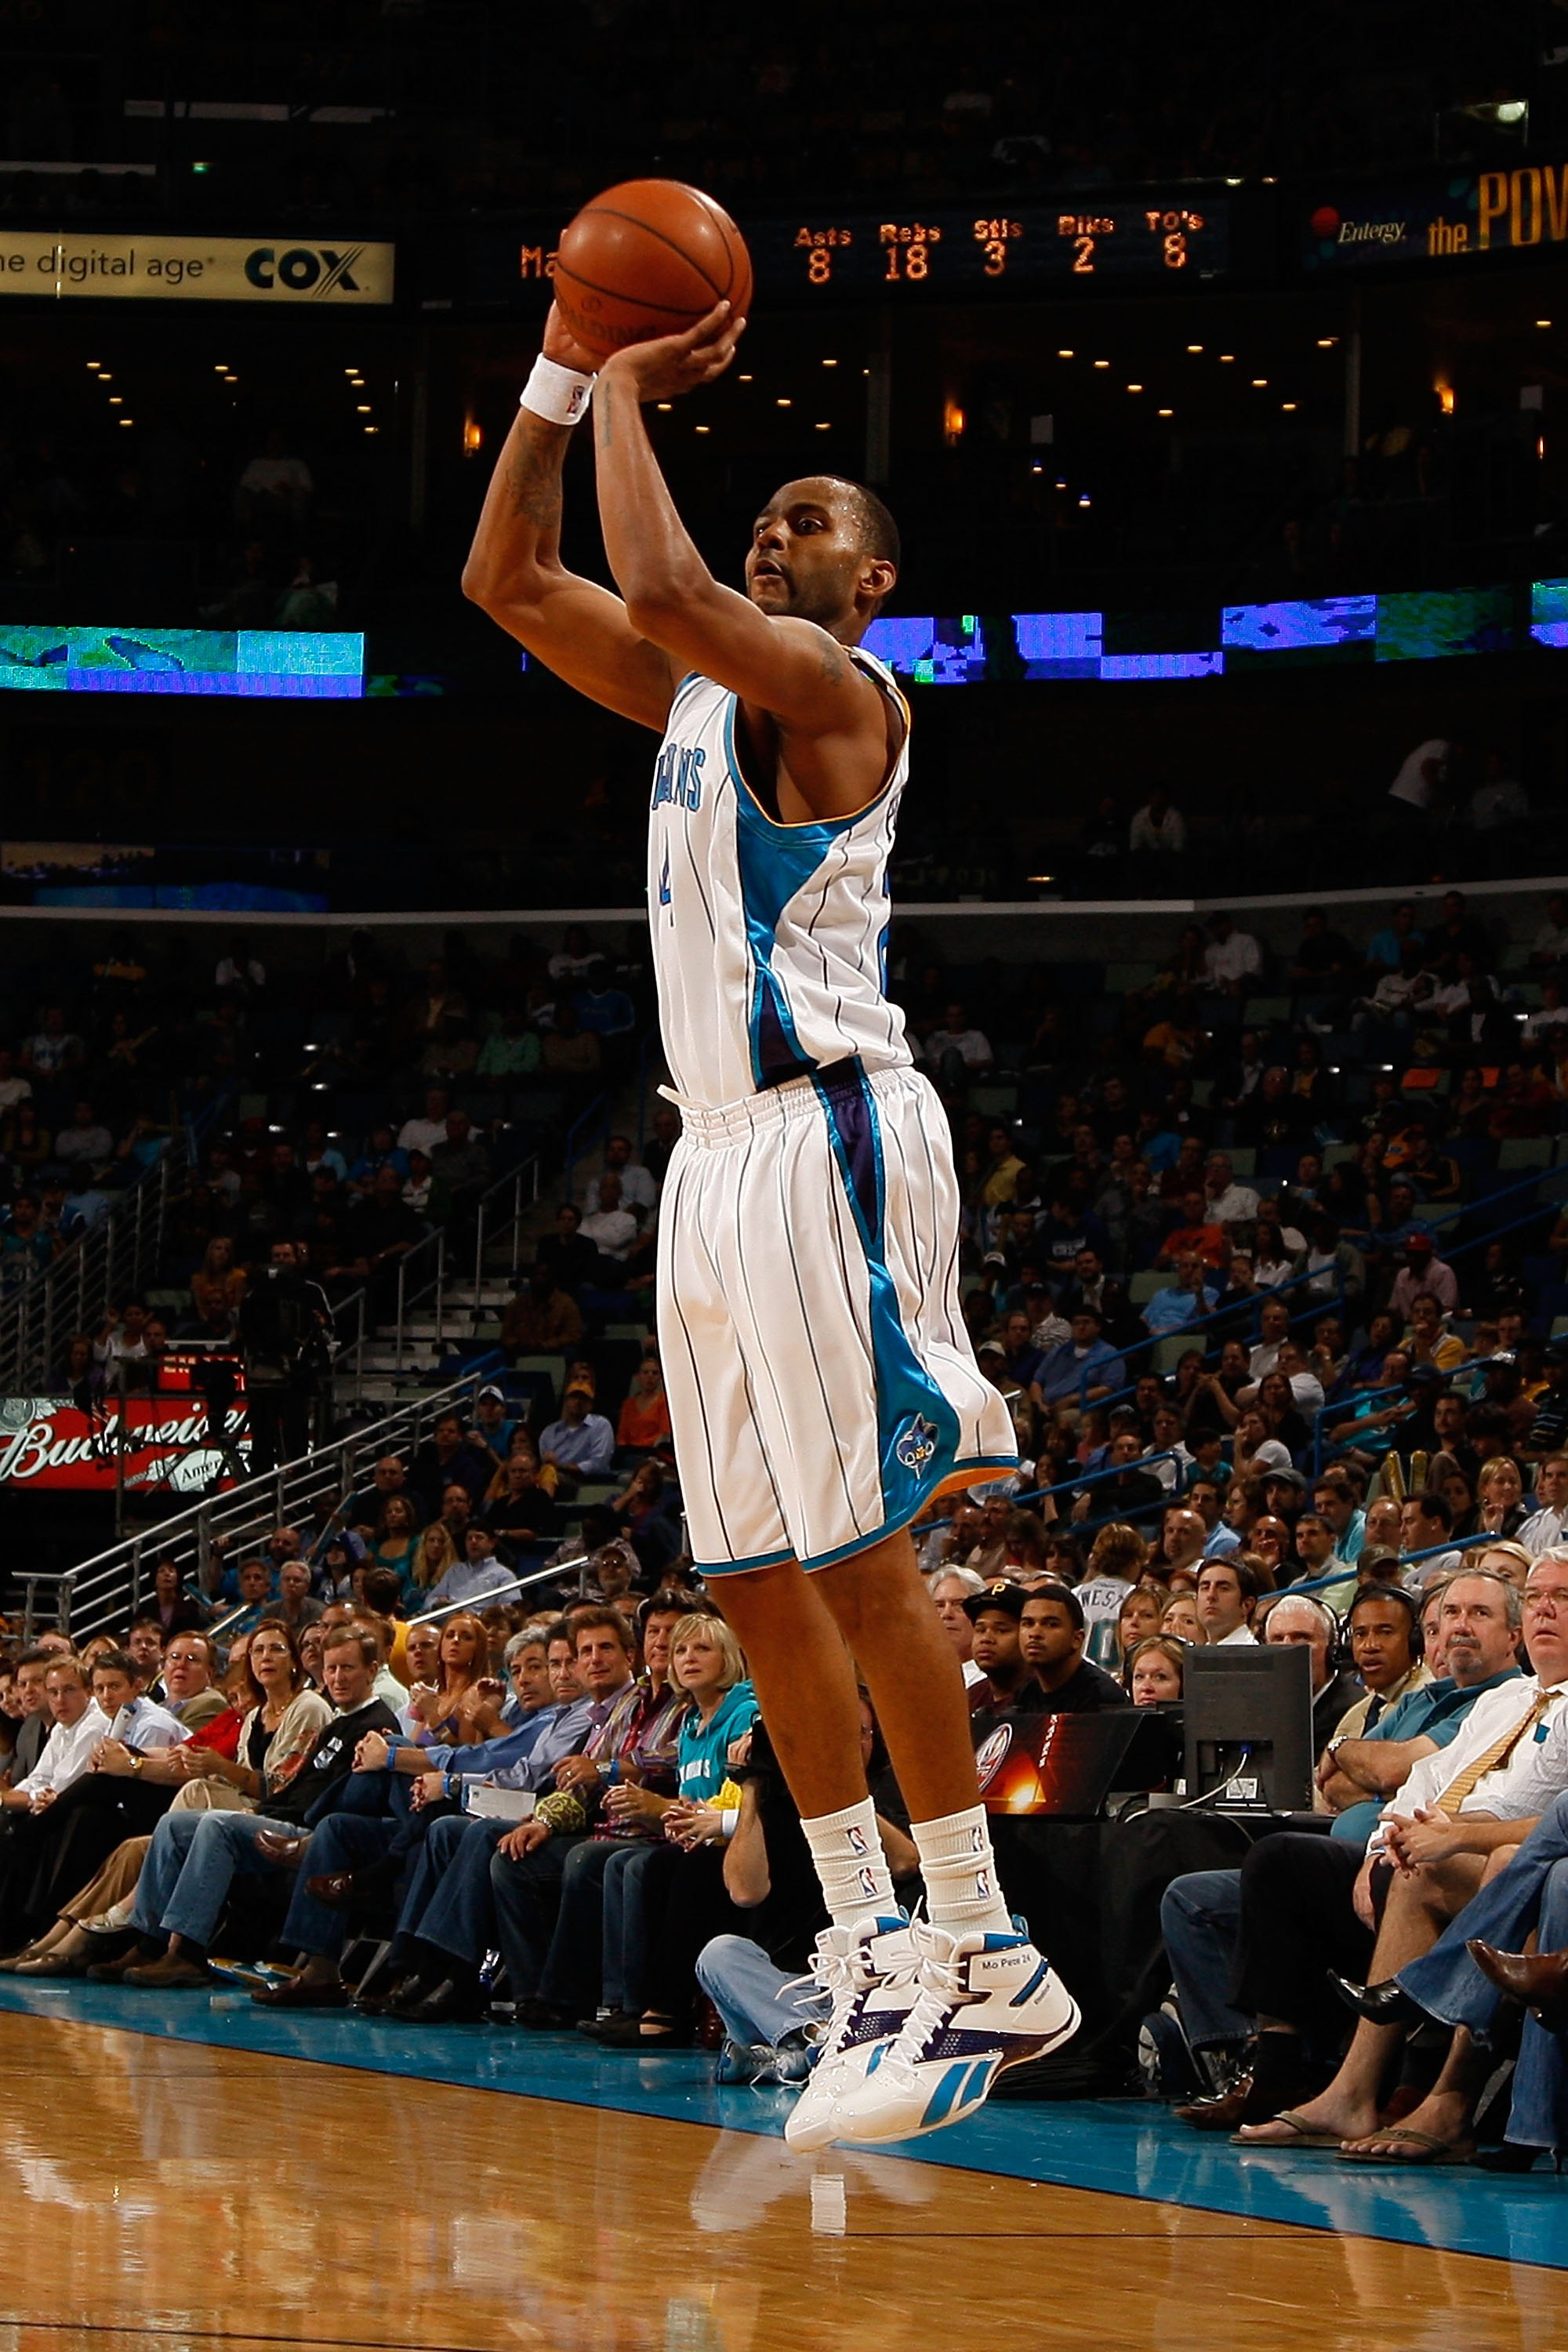 NEW ORLEANS - NOVEMBER 04:  Morris Peterson #24 of the New Orleans Hornets makes a shot against the Dallas Mavericks at New Orleans Arena on November 4, 2009 in New Orleans, Louisiana.  NOTE TO USER: User expressly acknowledges and agrees that, by downloa